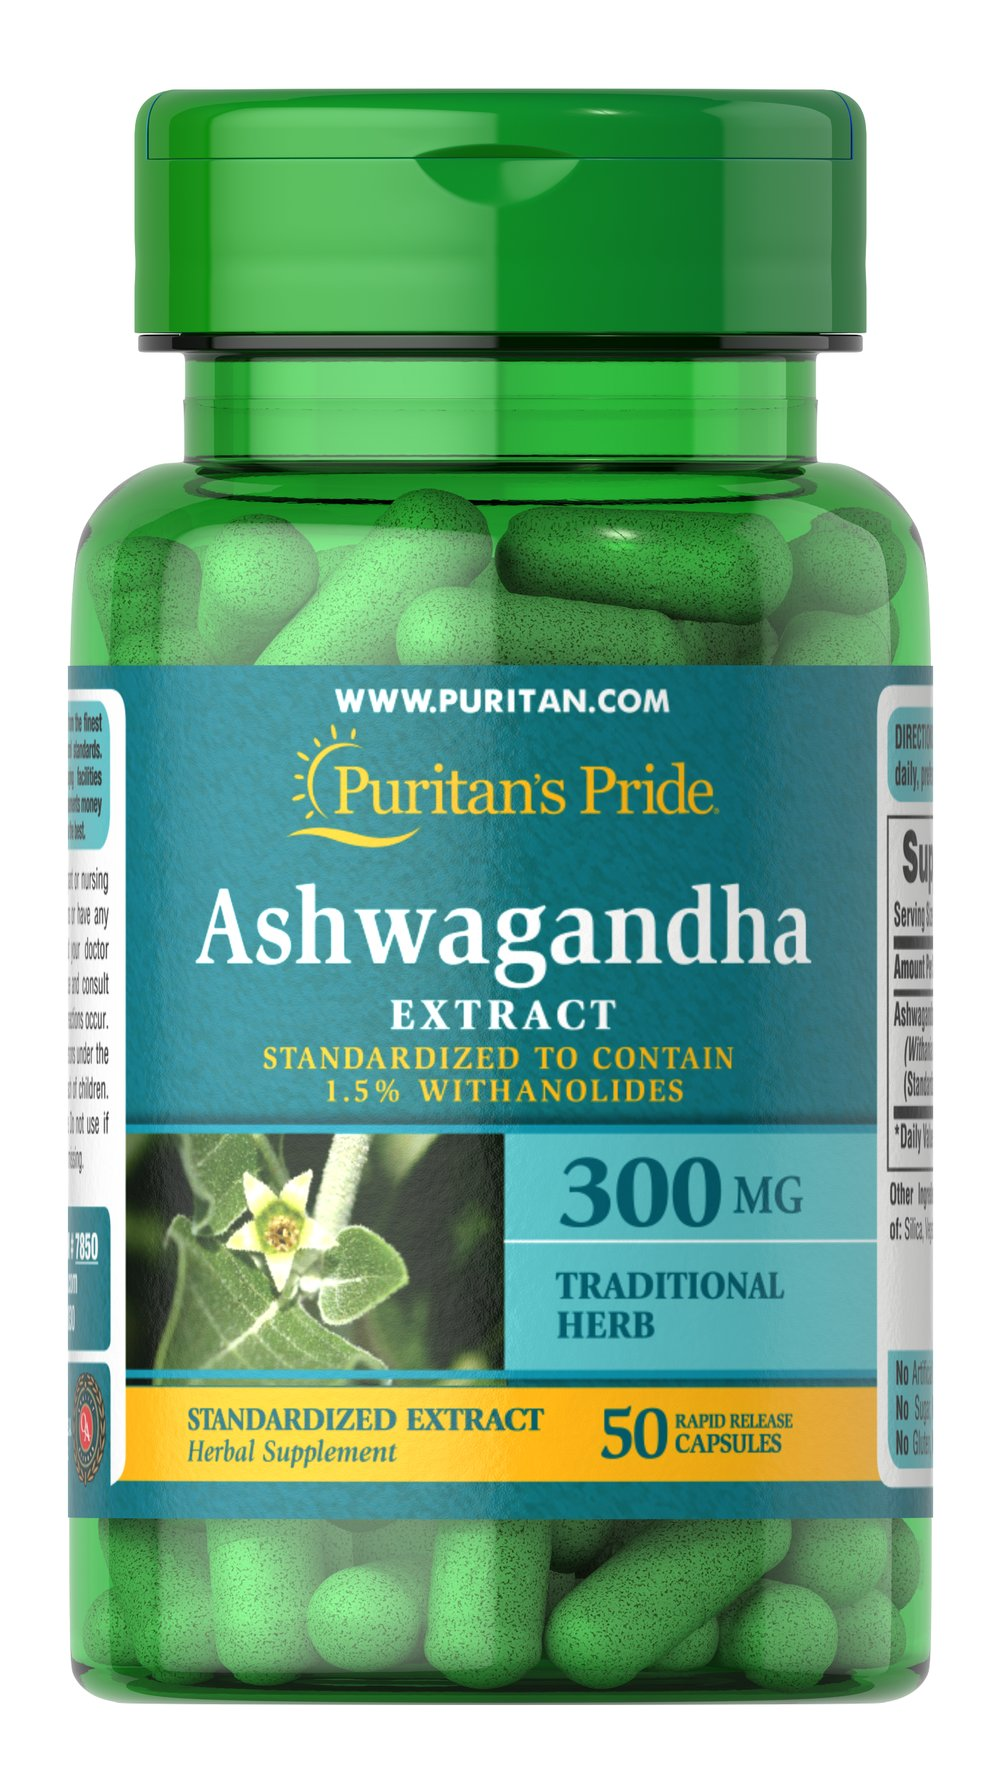 "Ashwagandha Standardized Extract 300 mg <p>Famous for its goodness as a refresher**</p><p>Known as the ""Indian Ginseng""</p><p>Standardized to contain 1.5% Withanolides</p><p>Rapid Release Capsules<br /></p> 50 Capsules 300 mg $8.99"